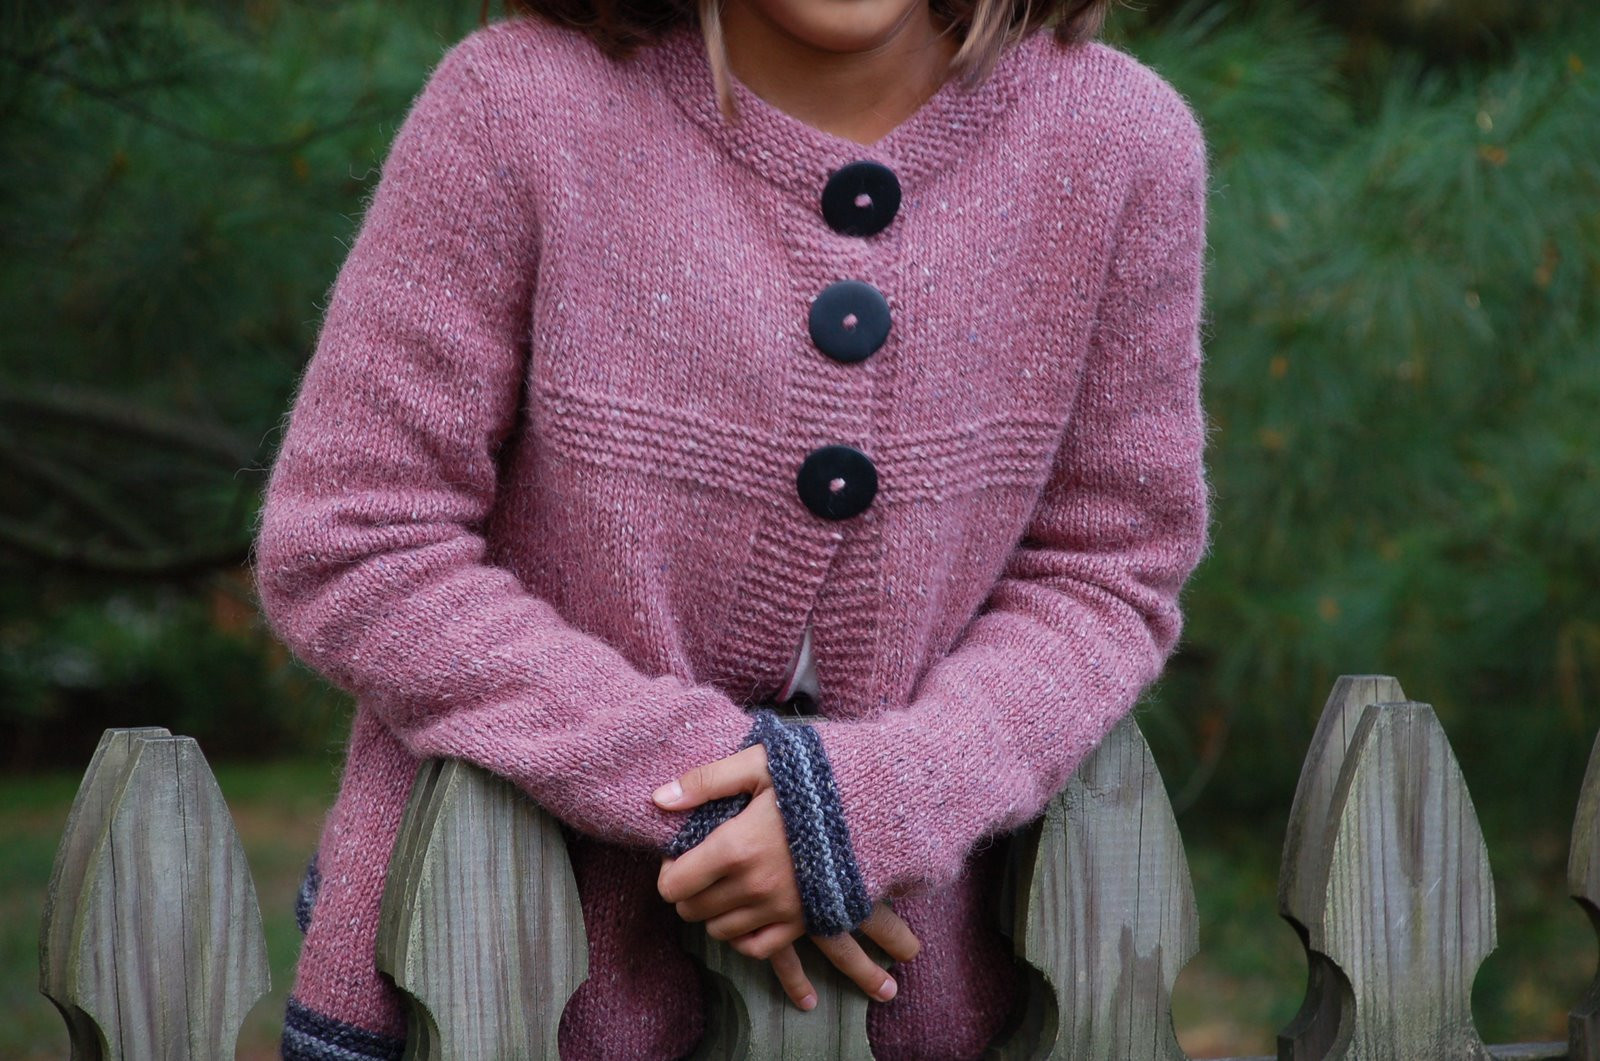 Free Knitting Patterns Sweaters Inspirational the Libby A Friend to Knit with Of Charming 41 Images Free Knitting Patterns Sweaters